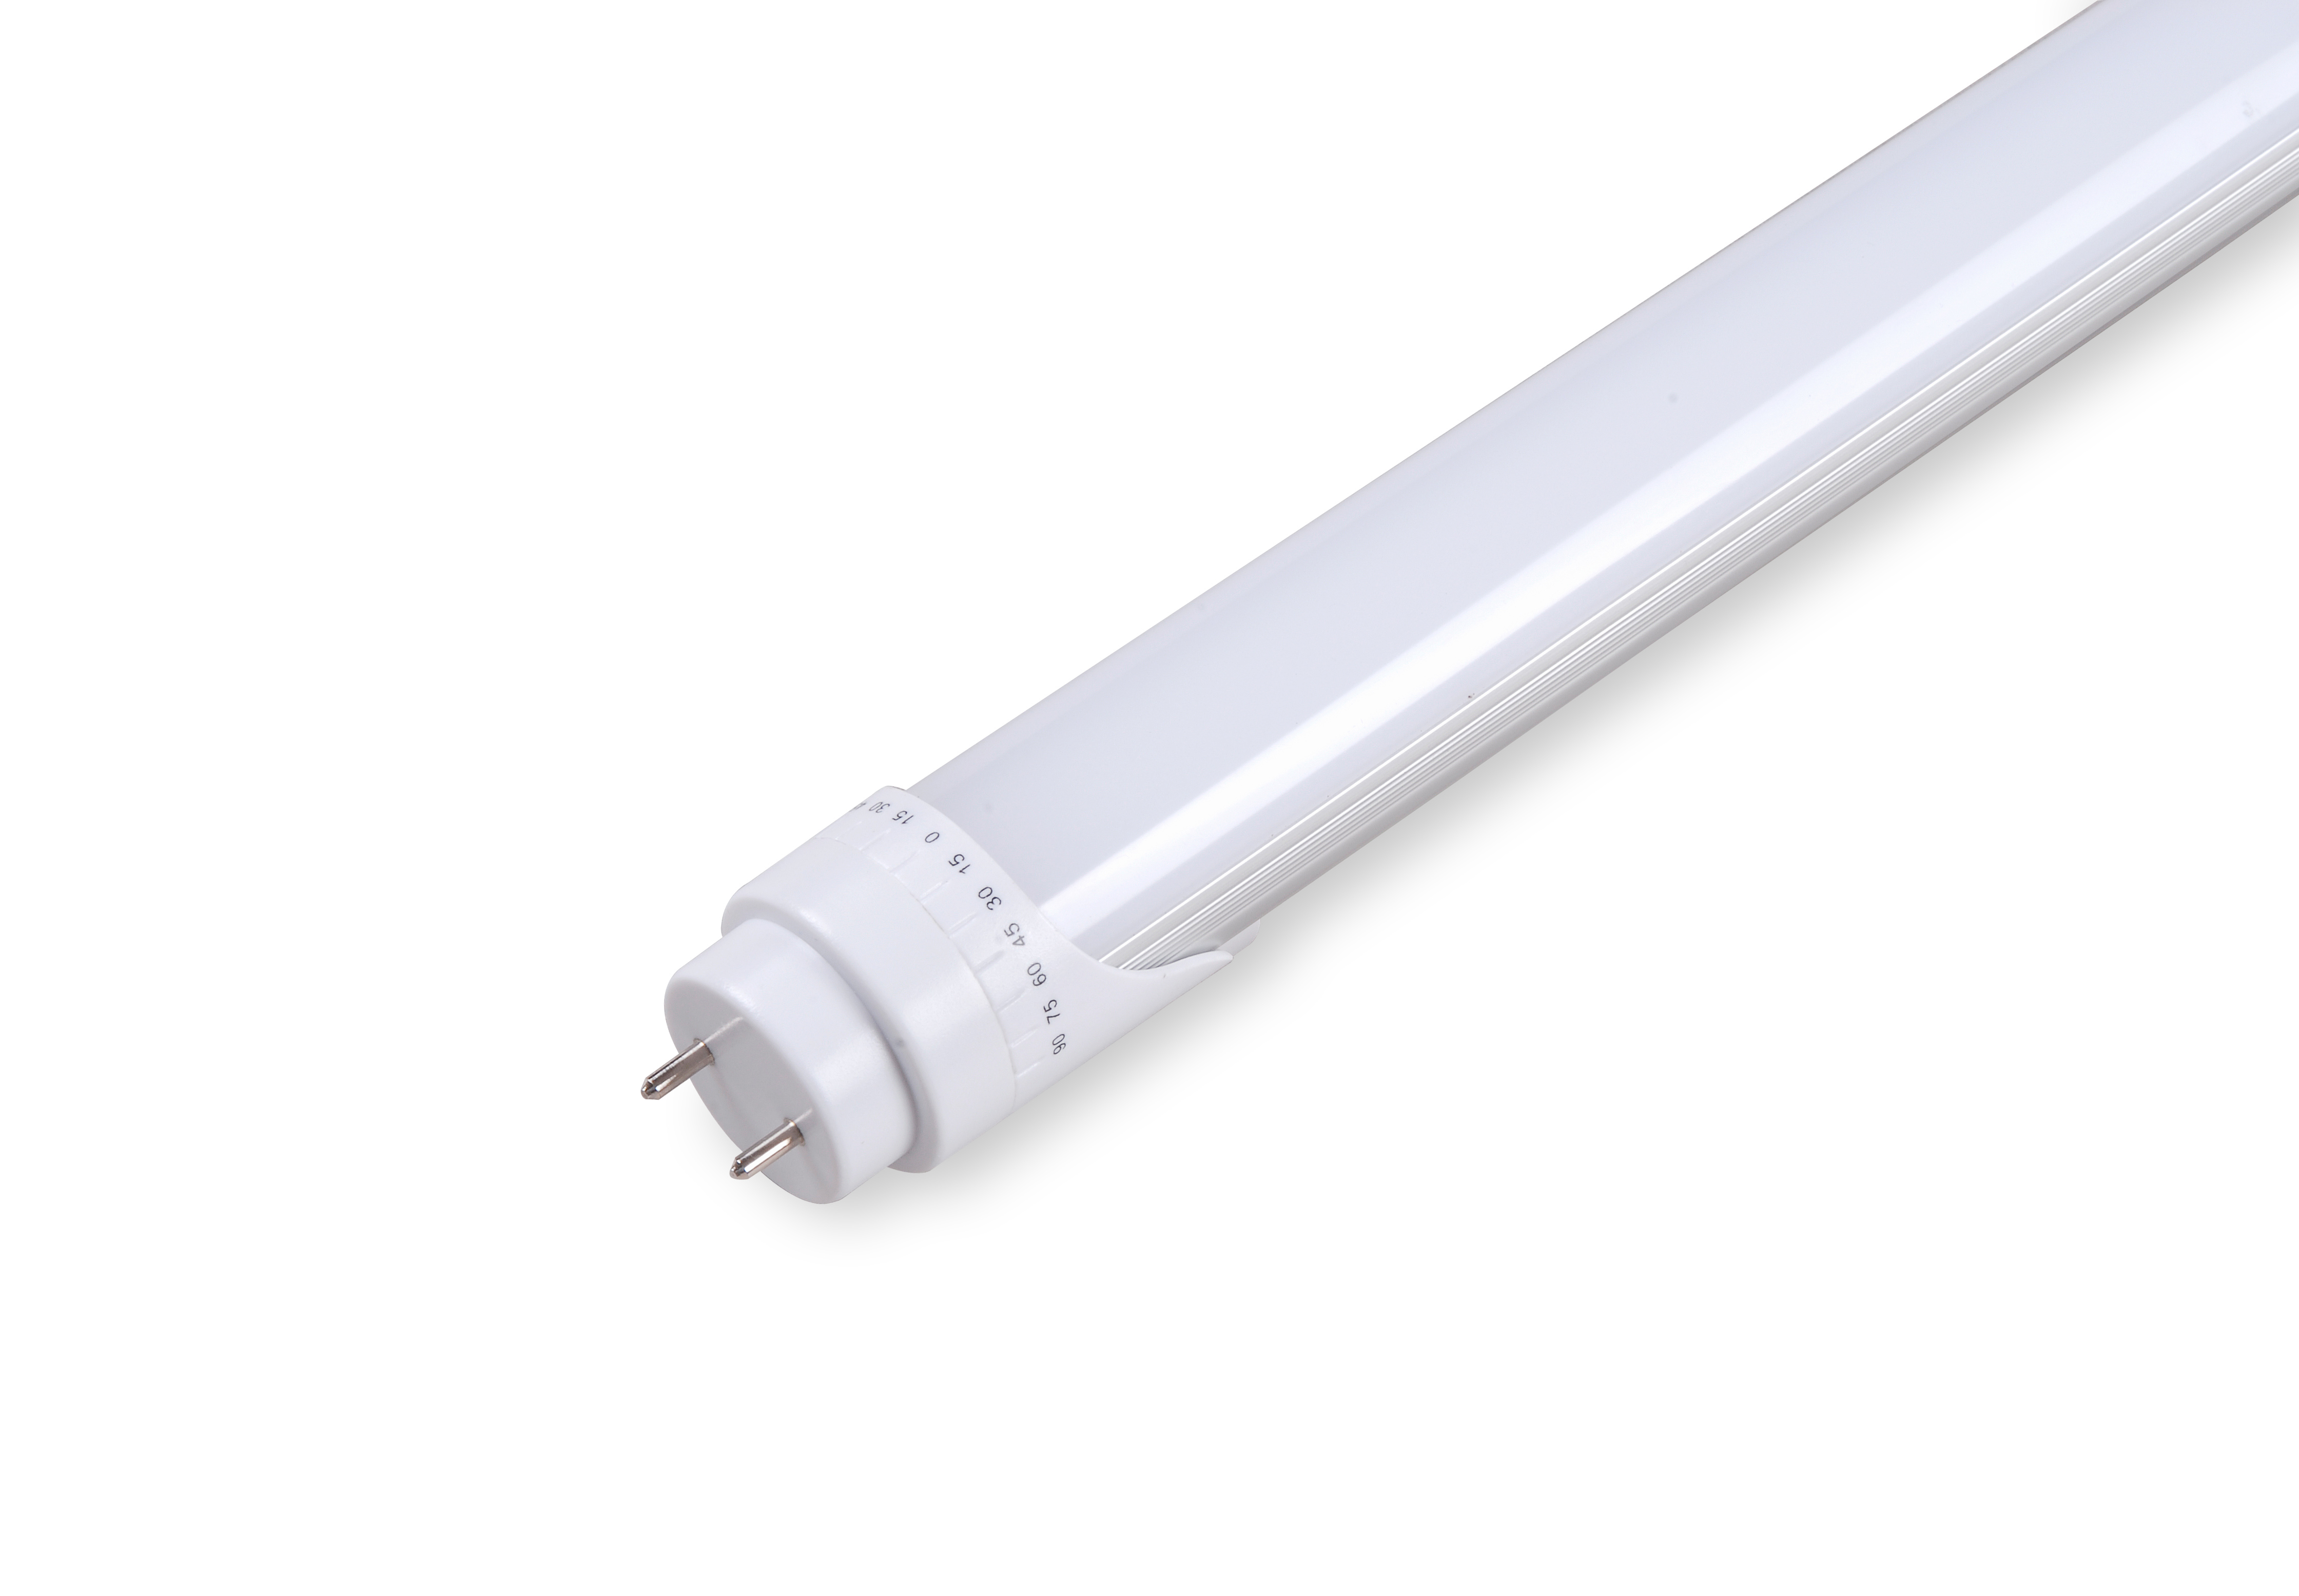 Led T8 Tube 1800mm T8 Led Tube Box Of 20 Trustled Led Lighting